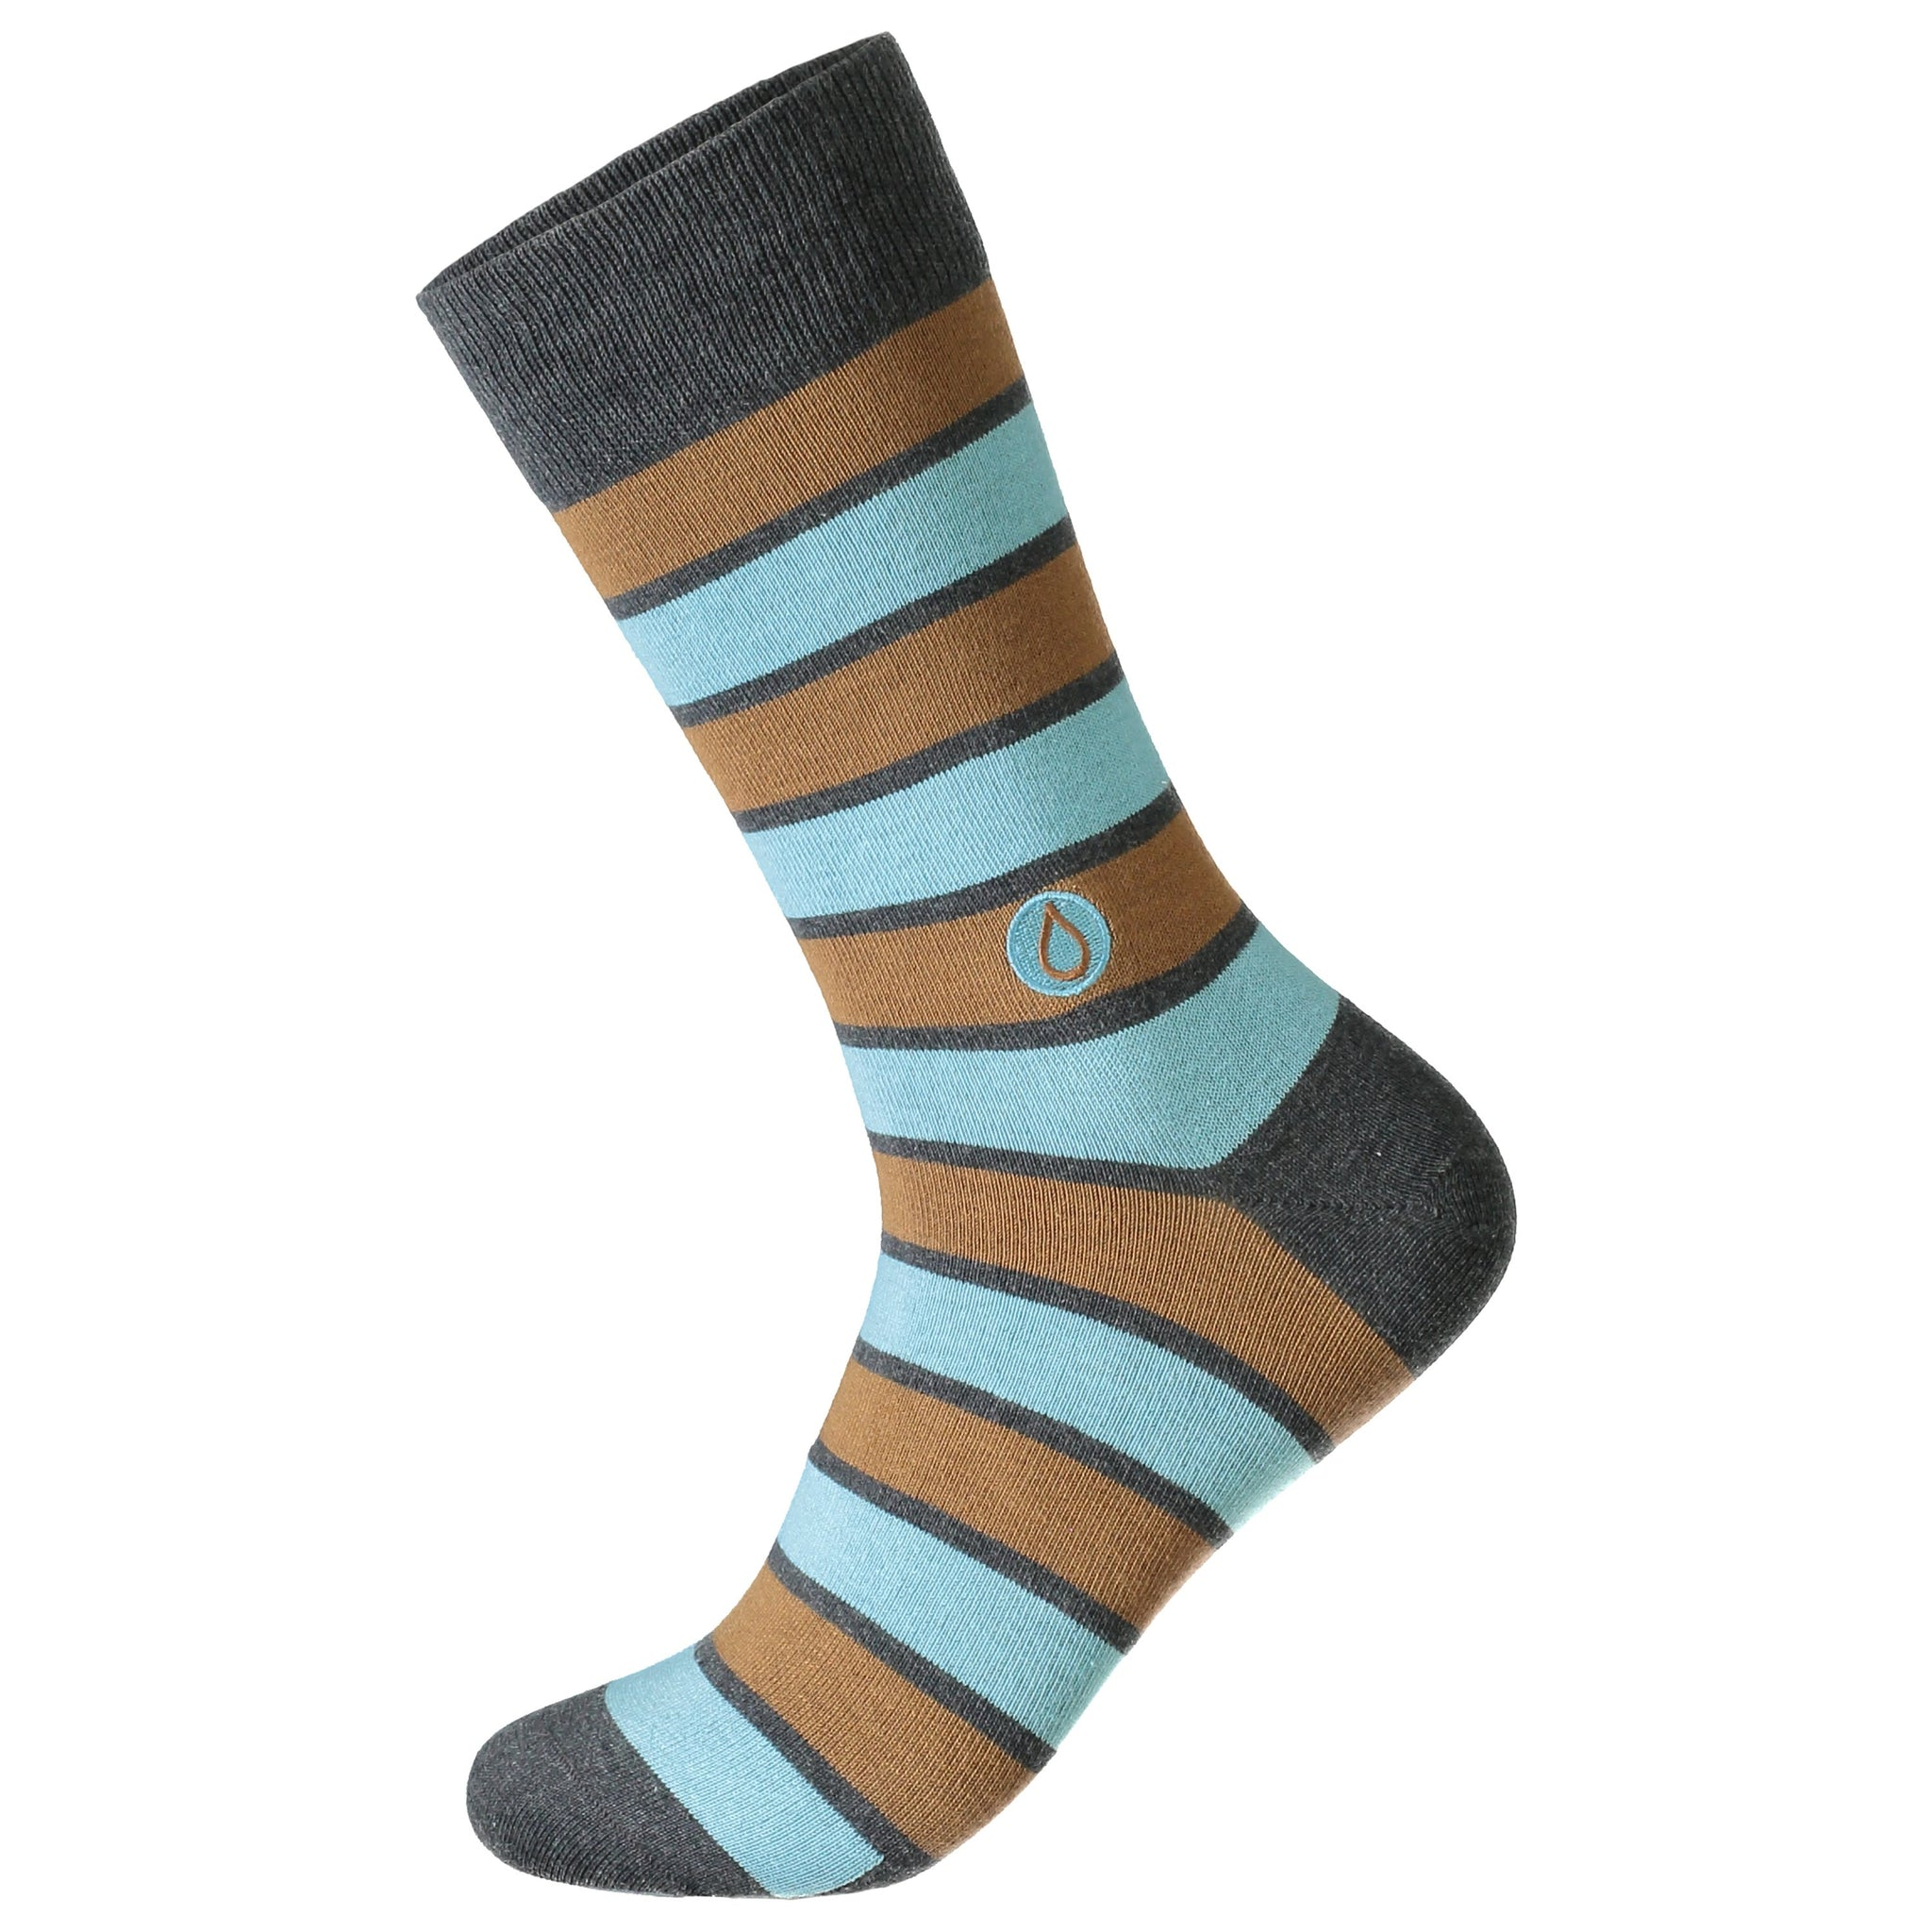 Socks that Give Water II